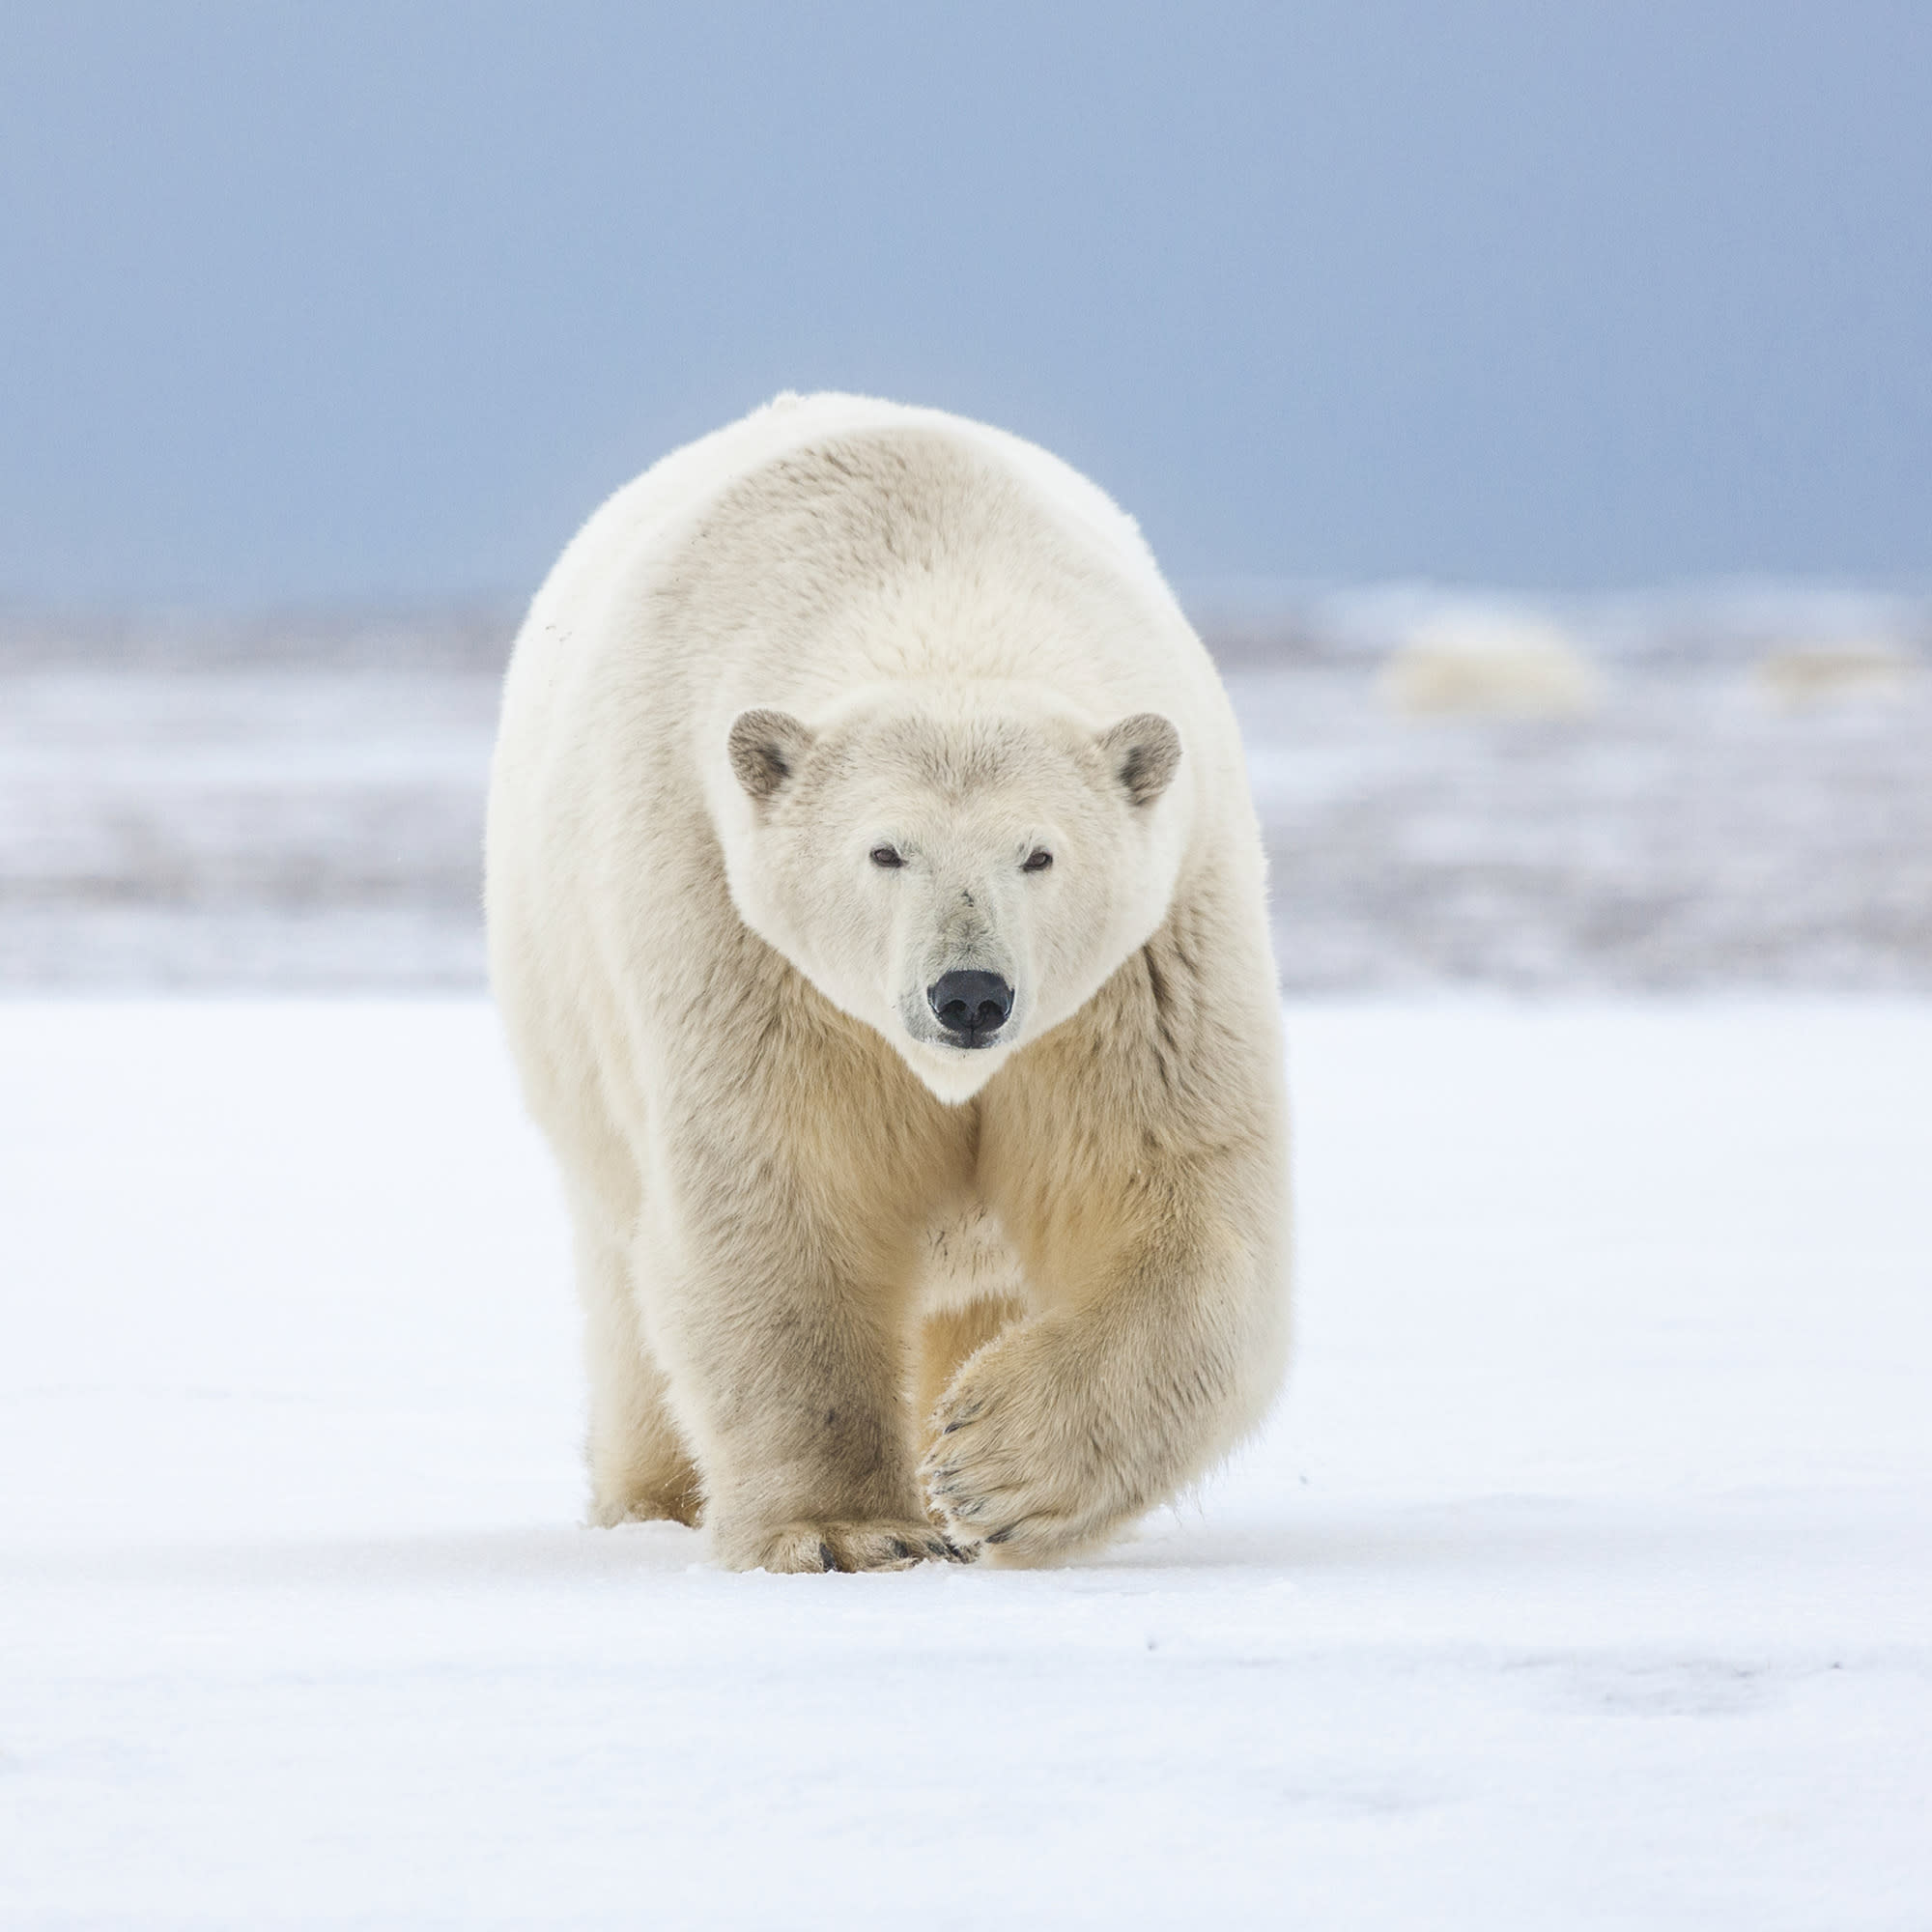 Polar bears could be extinct by end of the century